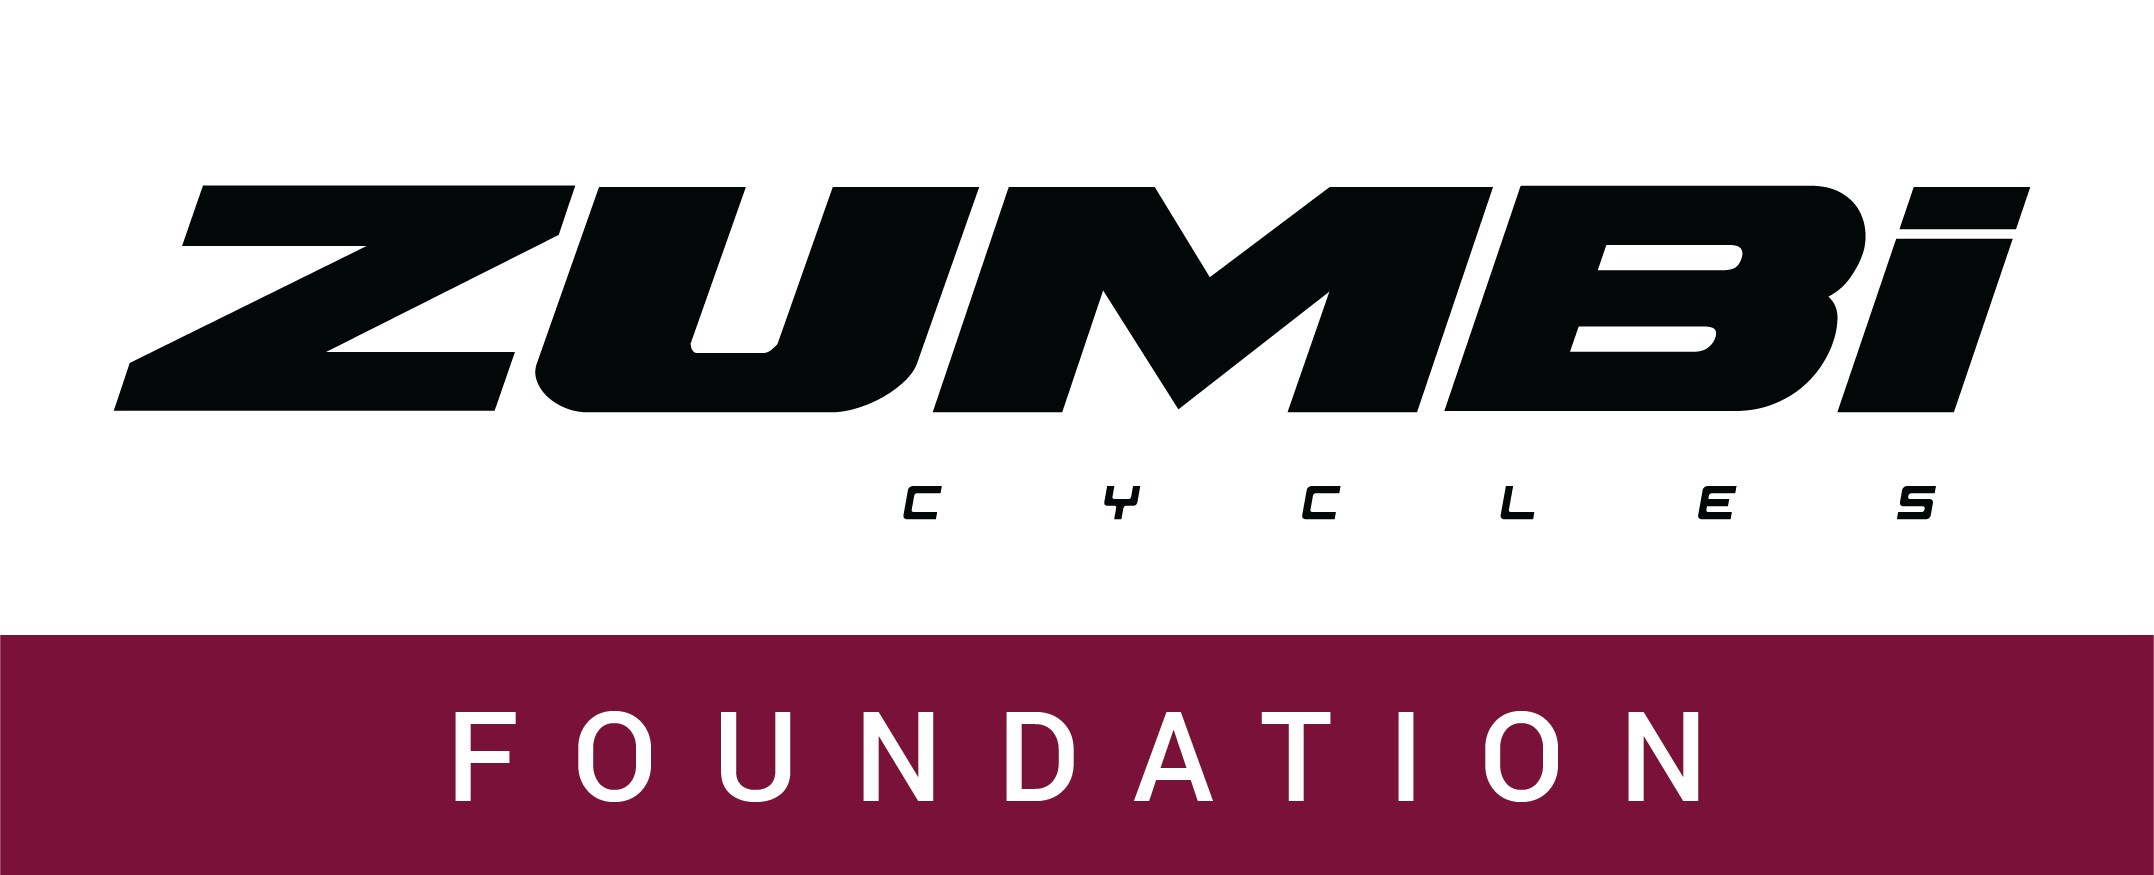 The_zumbi_cycles_foundation